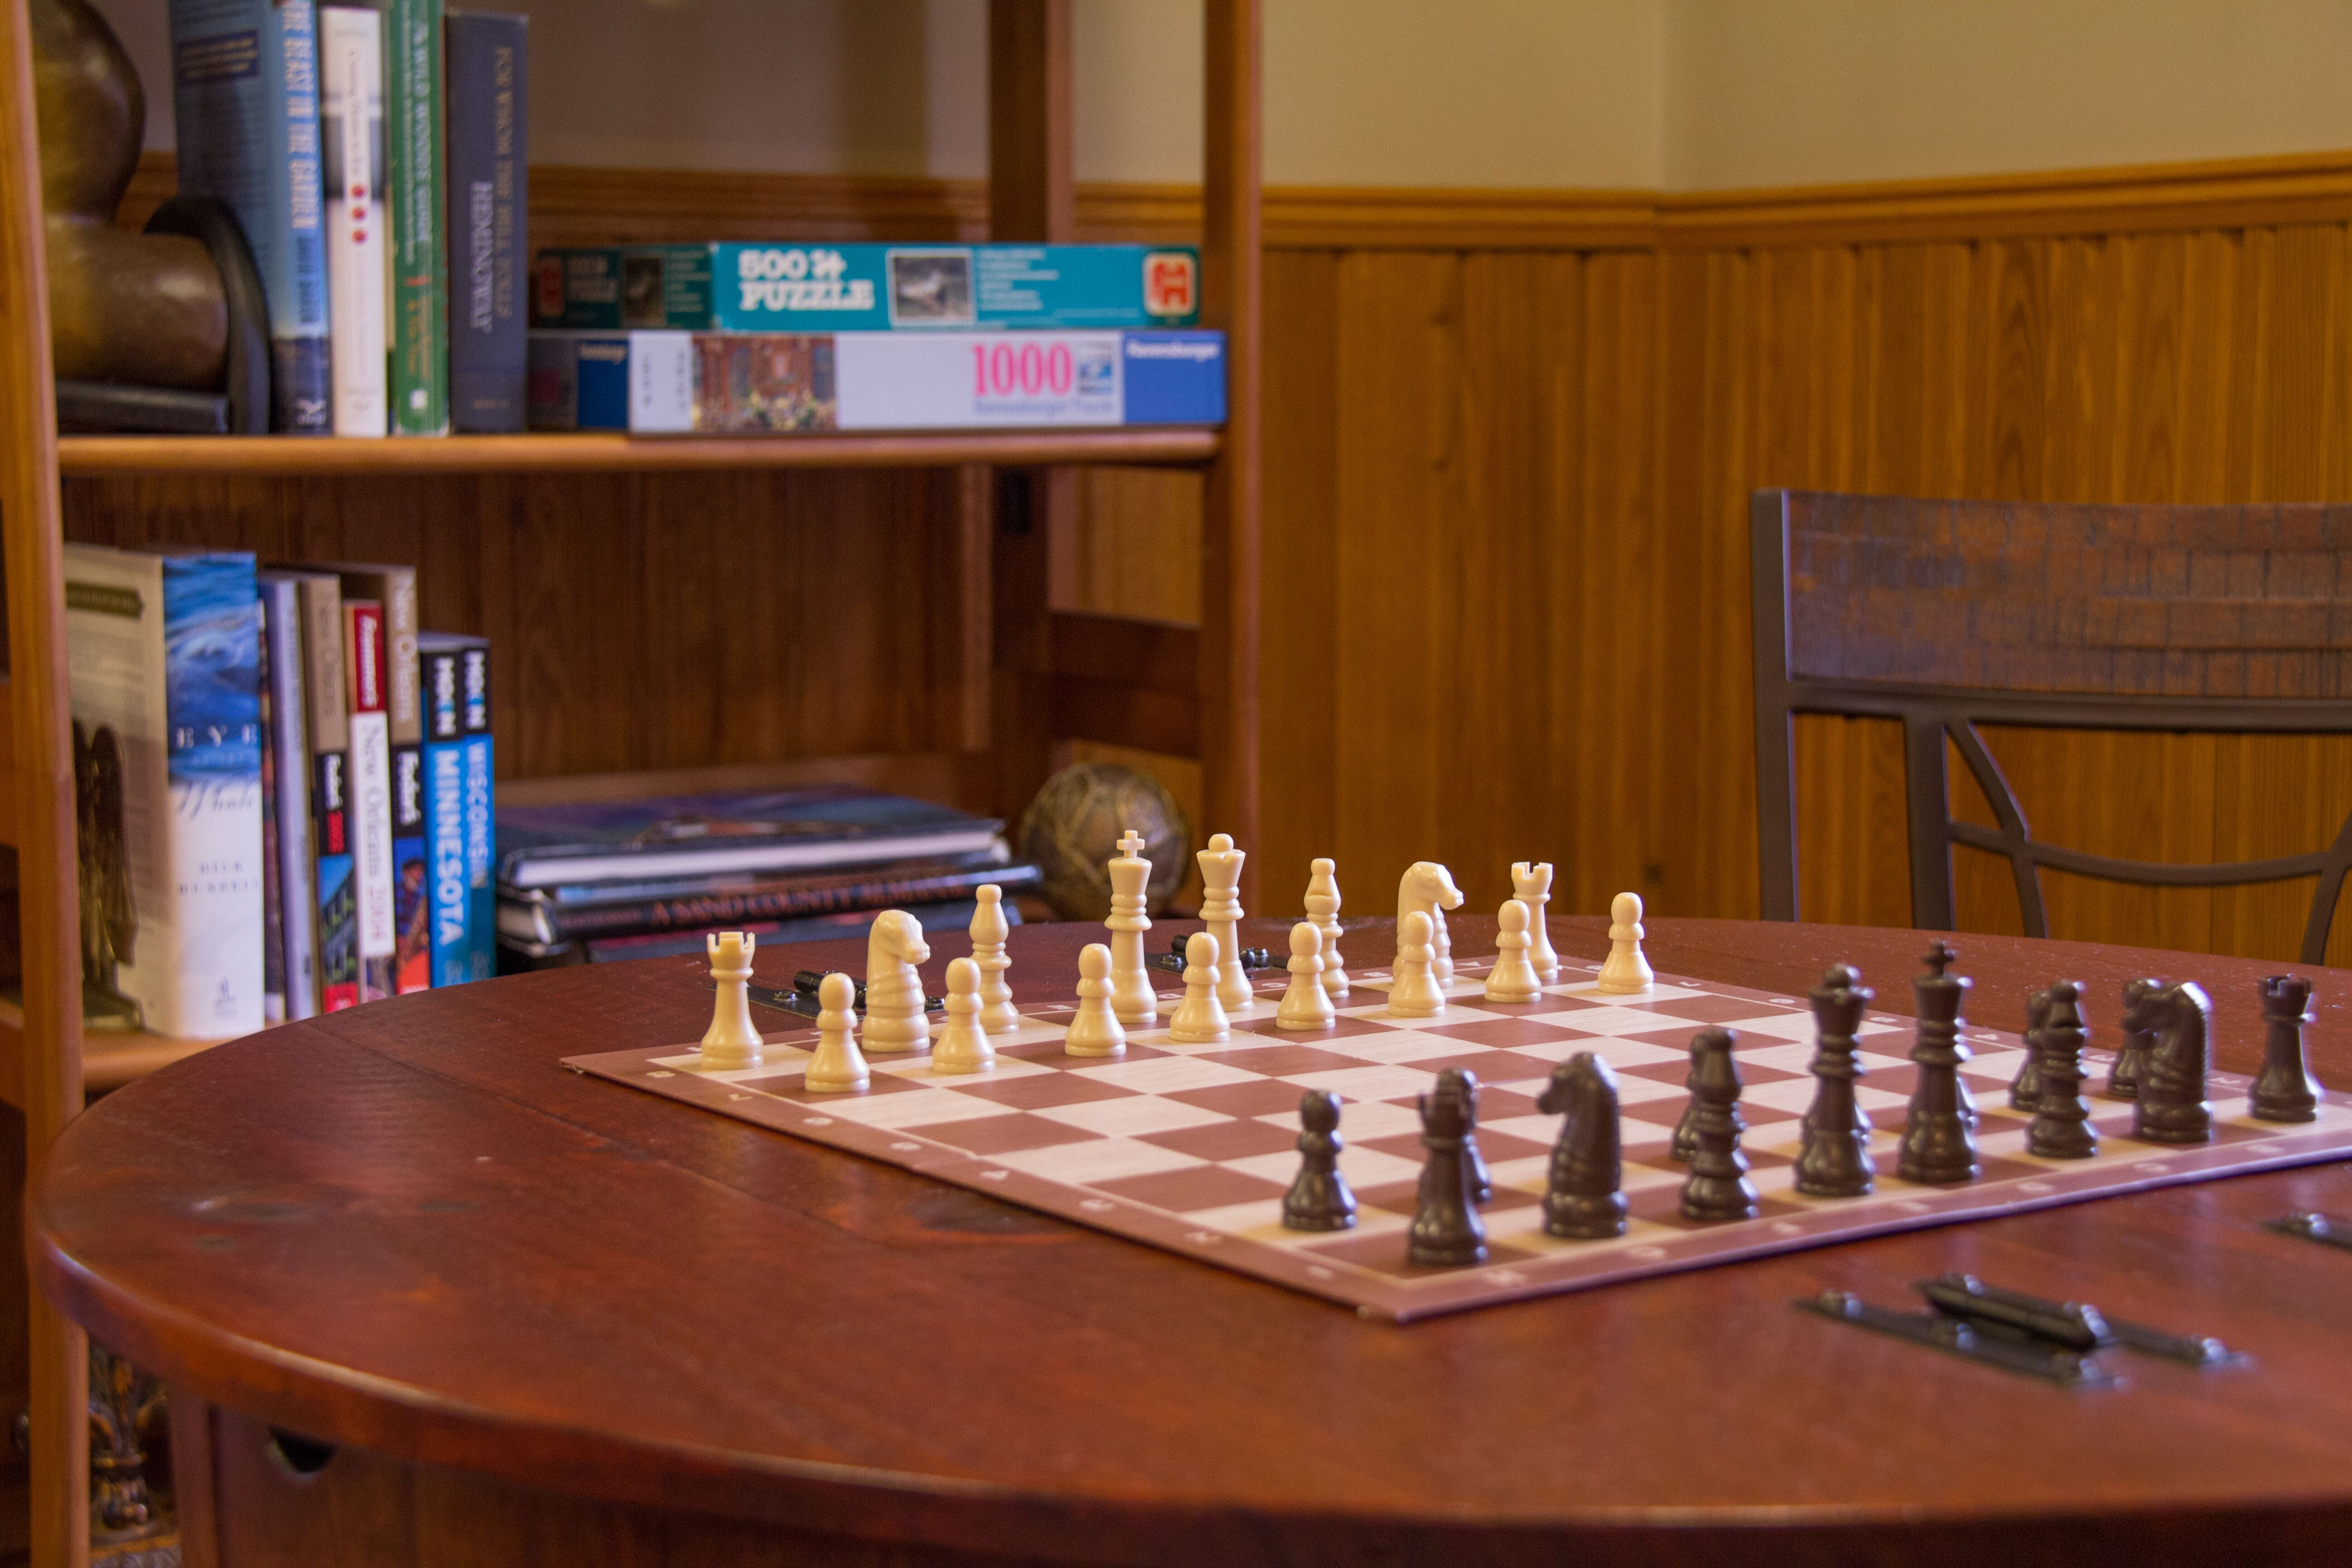 chess set on wood table with chair and shelves with books and puzzles in background